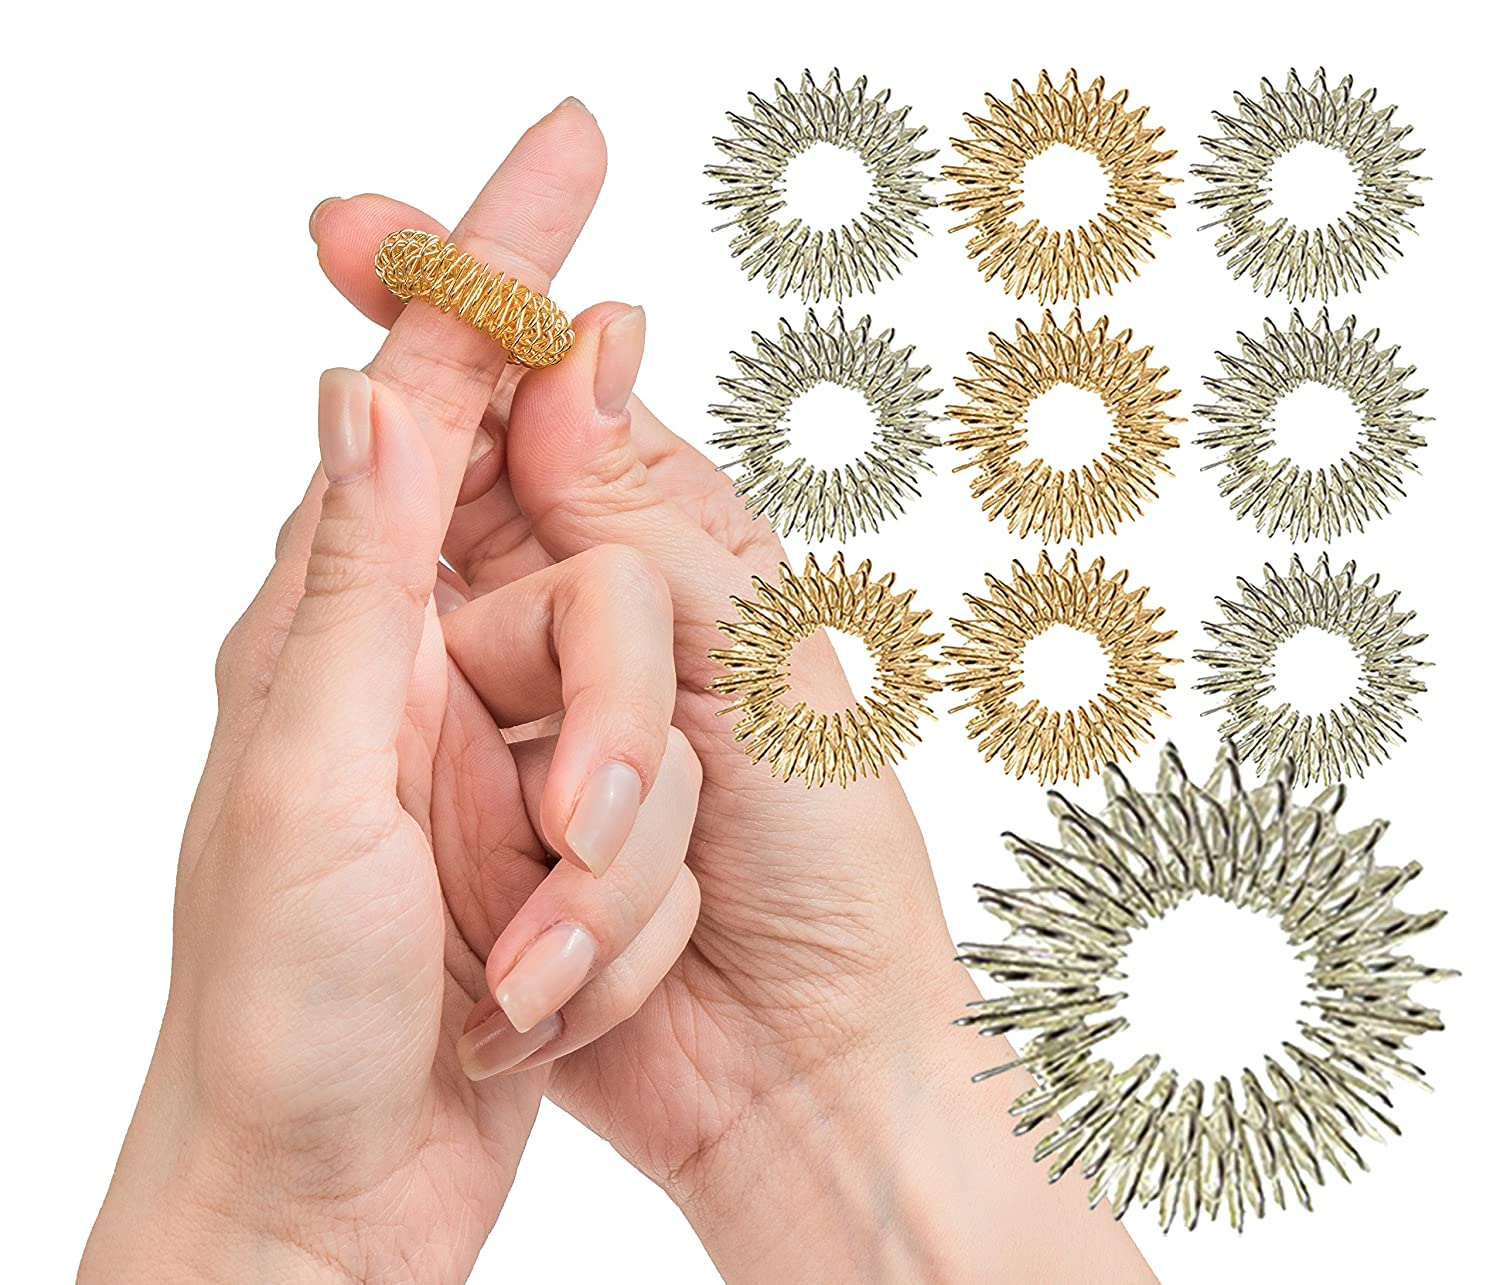 Spiky Sensory Finger Rings (Pack of 10) - Great Fidget/Sensory Toy for Kids and Adults - Spiky Finger Ring/Acupressure Ring Set Impresa Products BHBUSAZIN025487